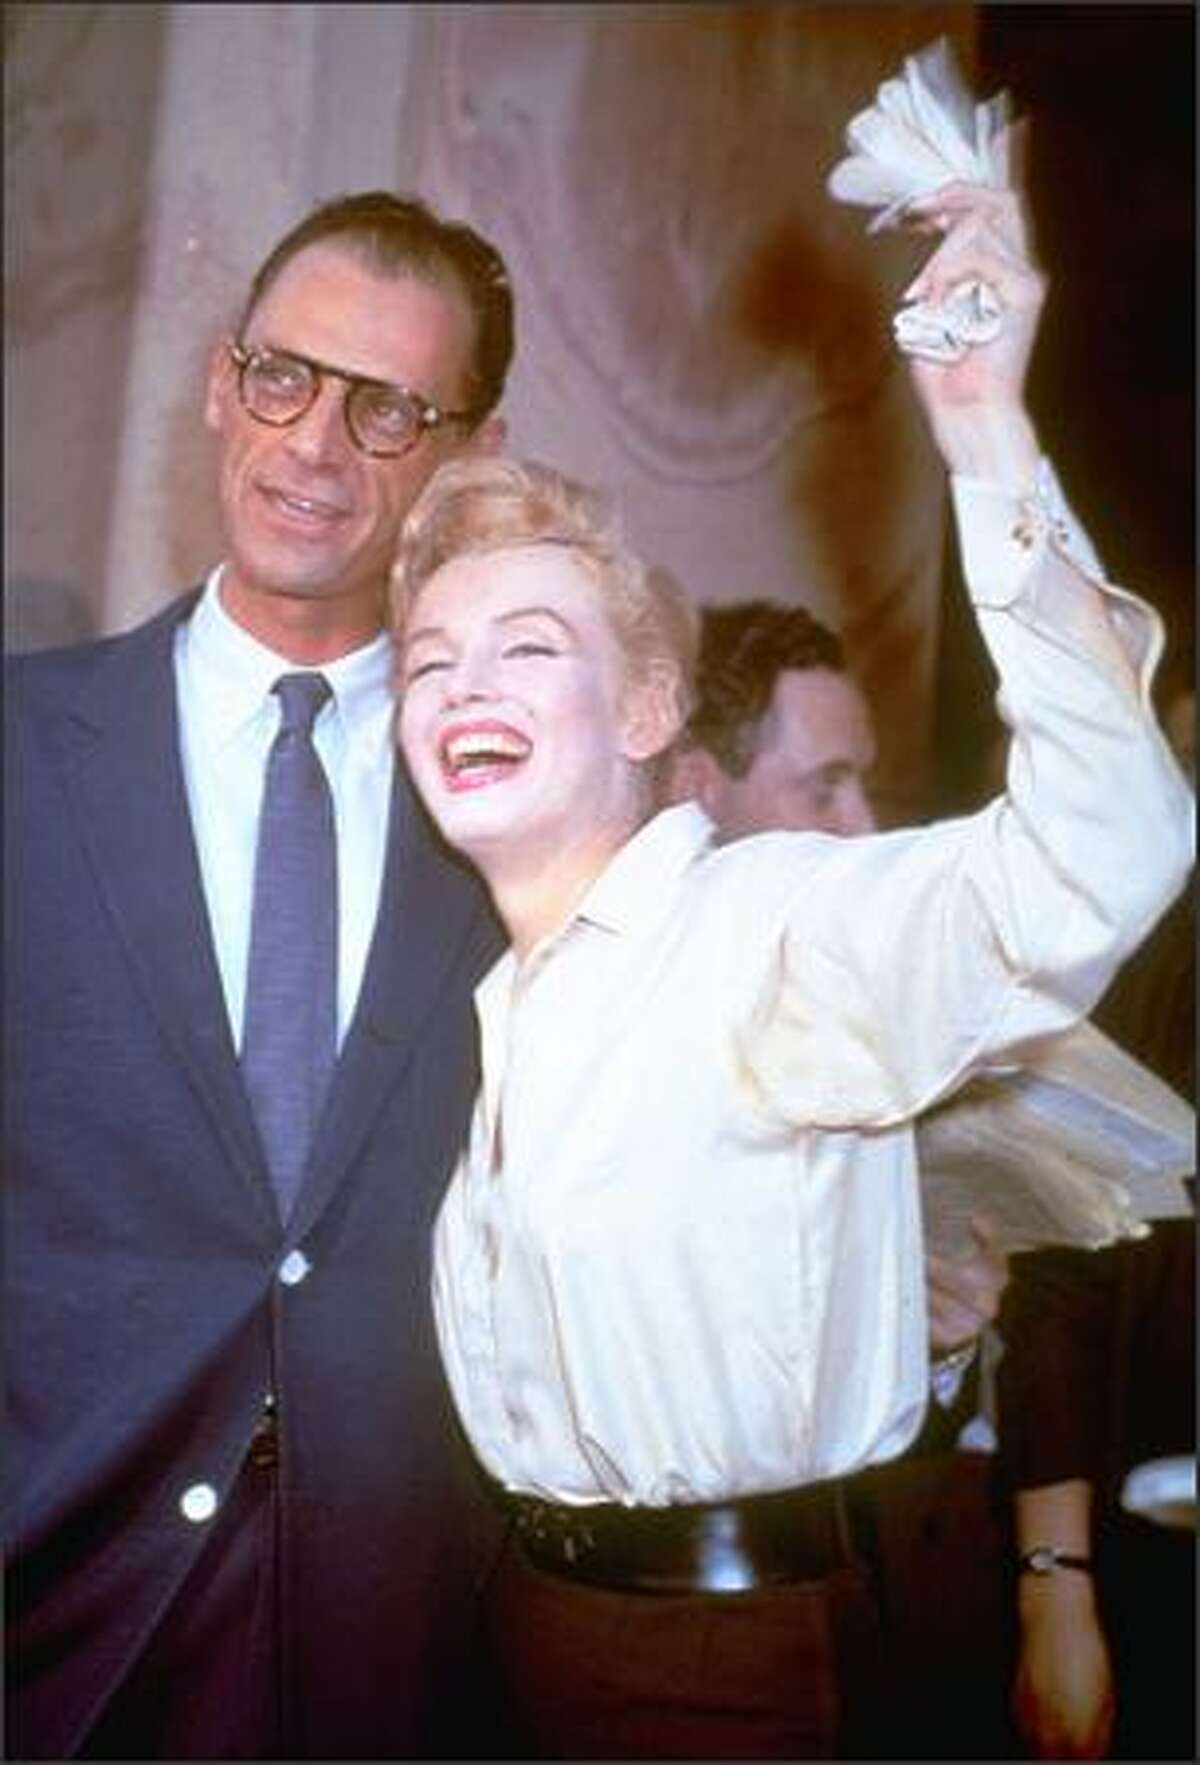 When Marilyn Monroe and playwright Arthur Miller wed in 1956, the FBI was watching, according to FBI files obtained by The Associated Press. The FBI listed Miller as a Communist and Monroe as a